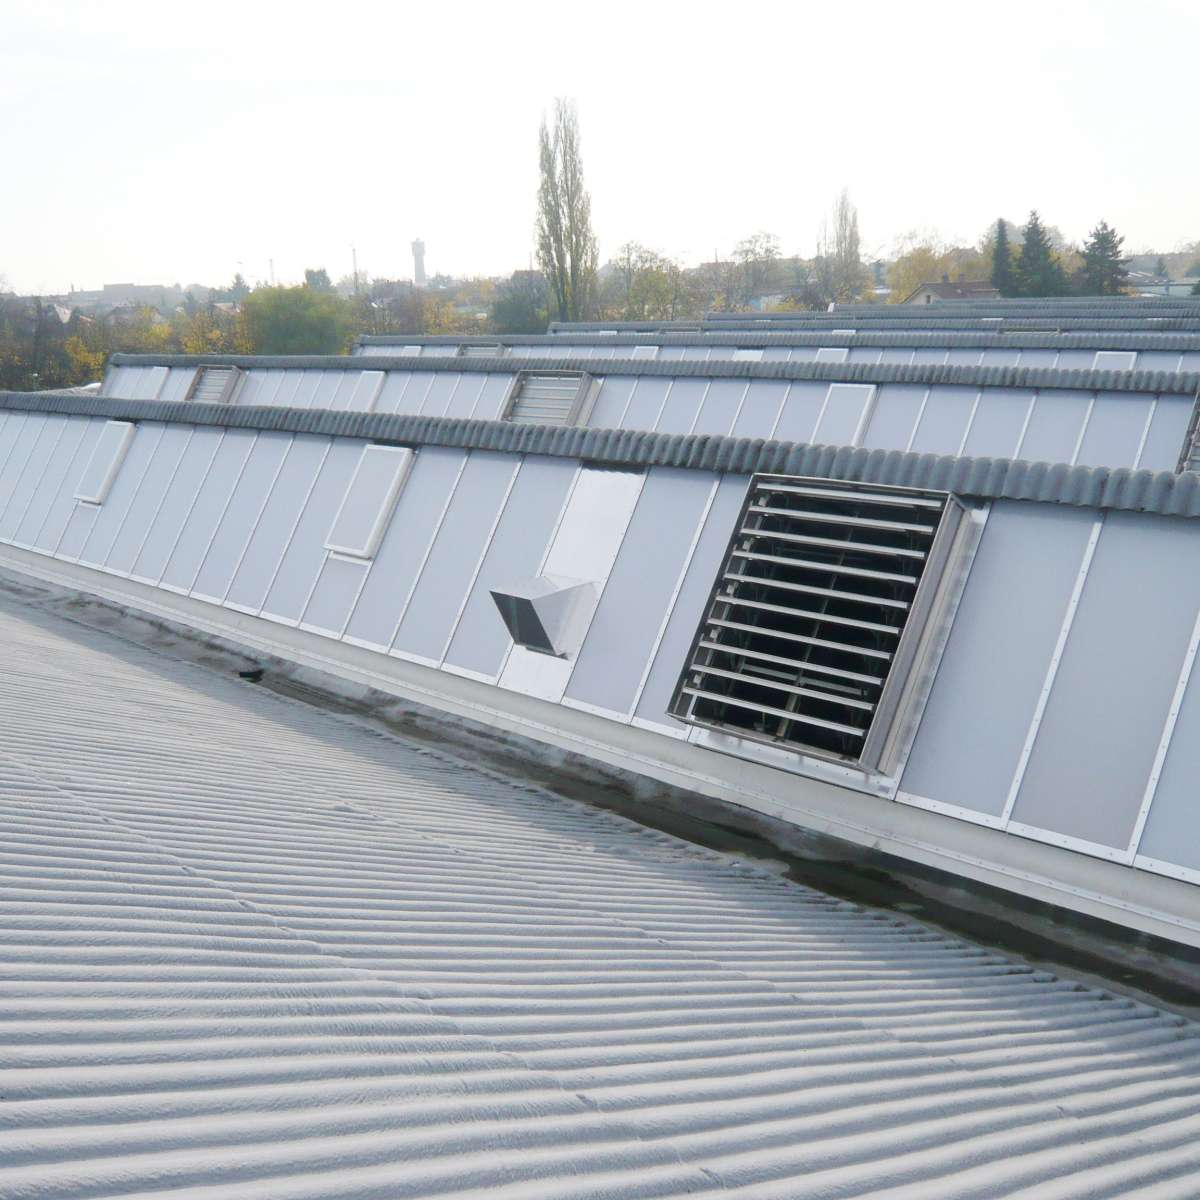 ABB Grundbesitz GmbH | Ladenburg • 72 Leo-vent polycarbonate ventilation wings with 24 V technology